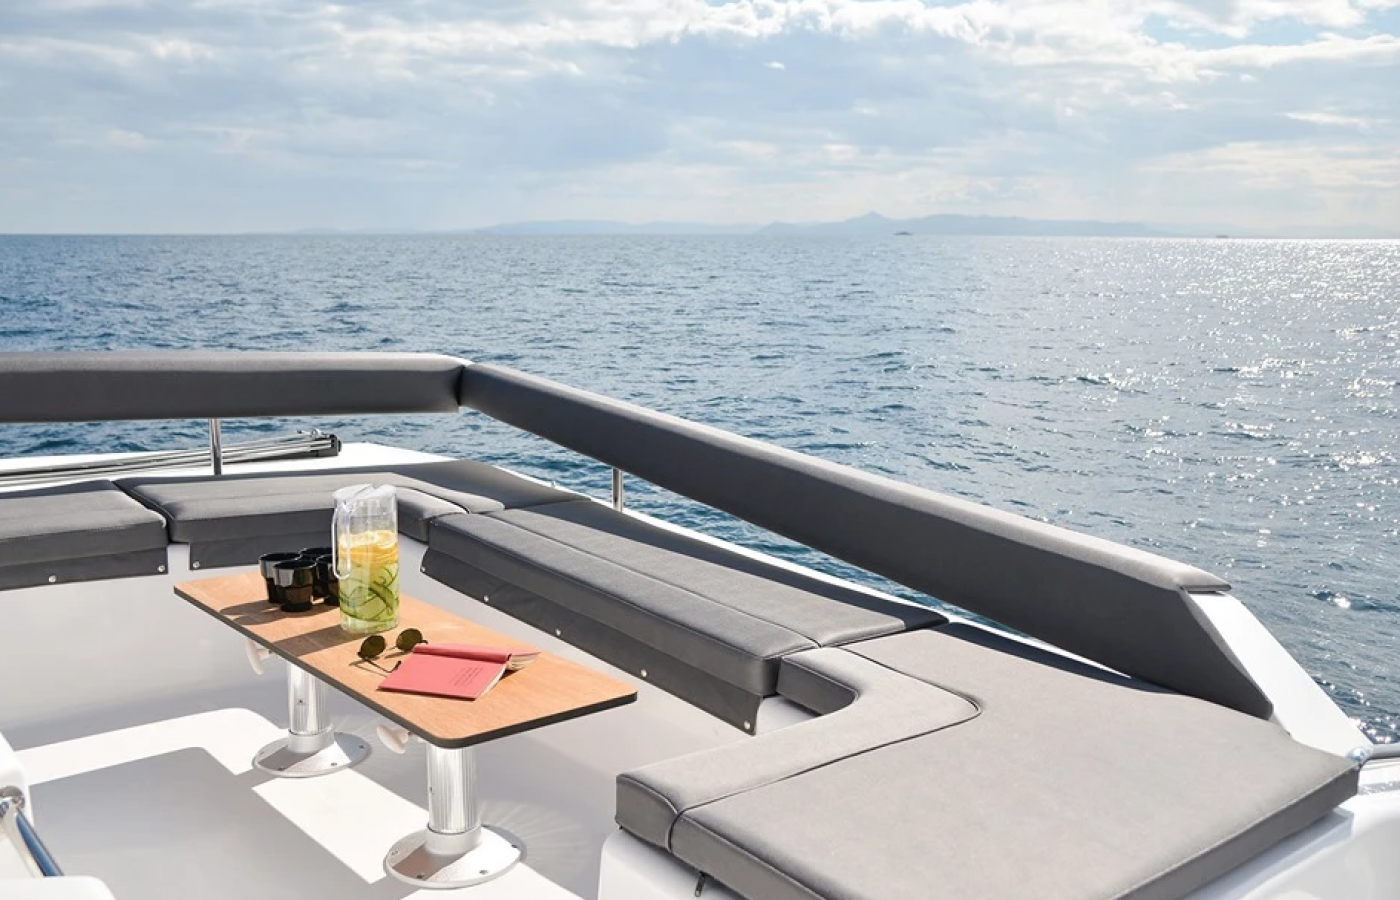 Large U shaped seating directly at the back of the boat.